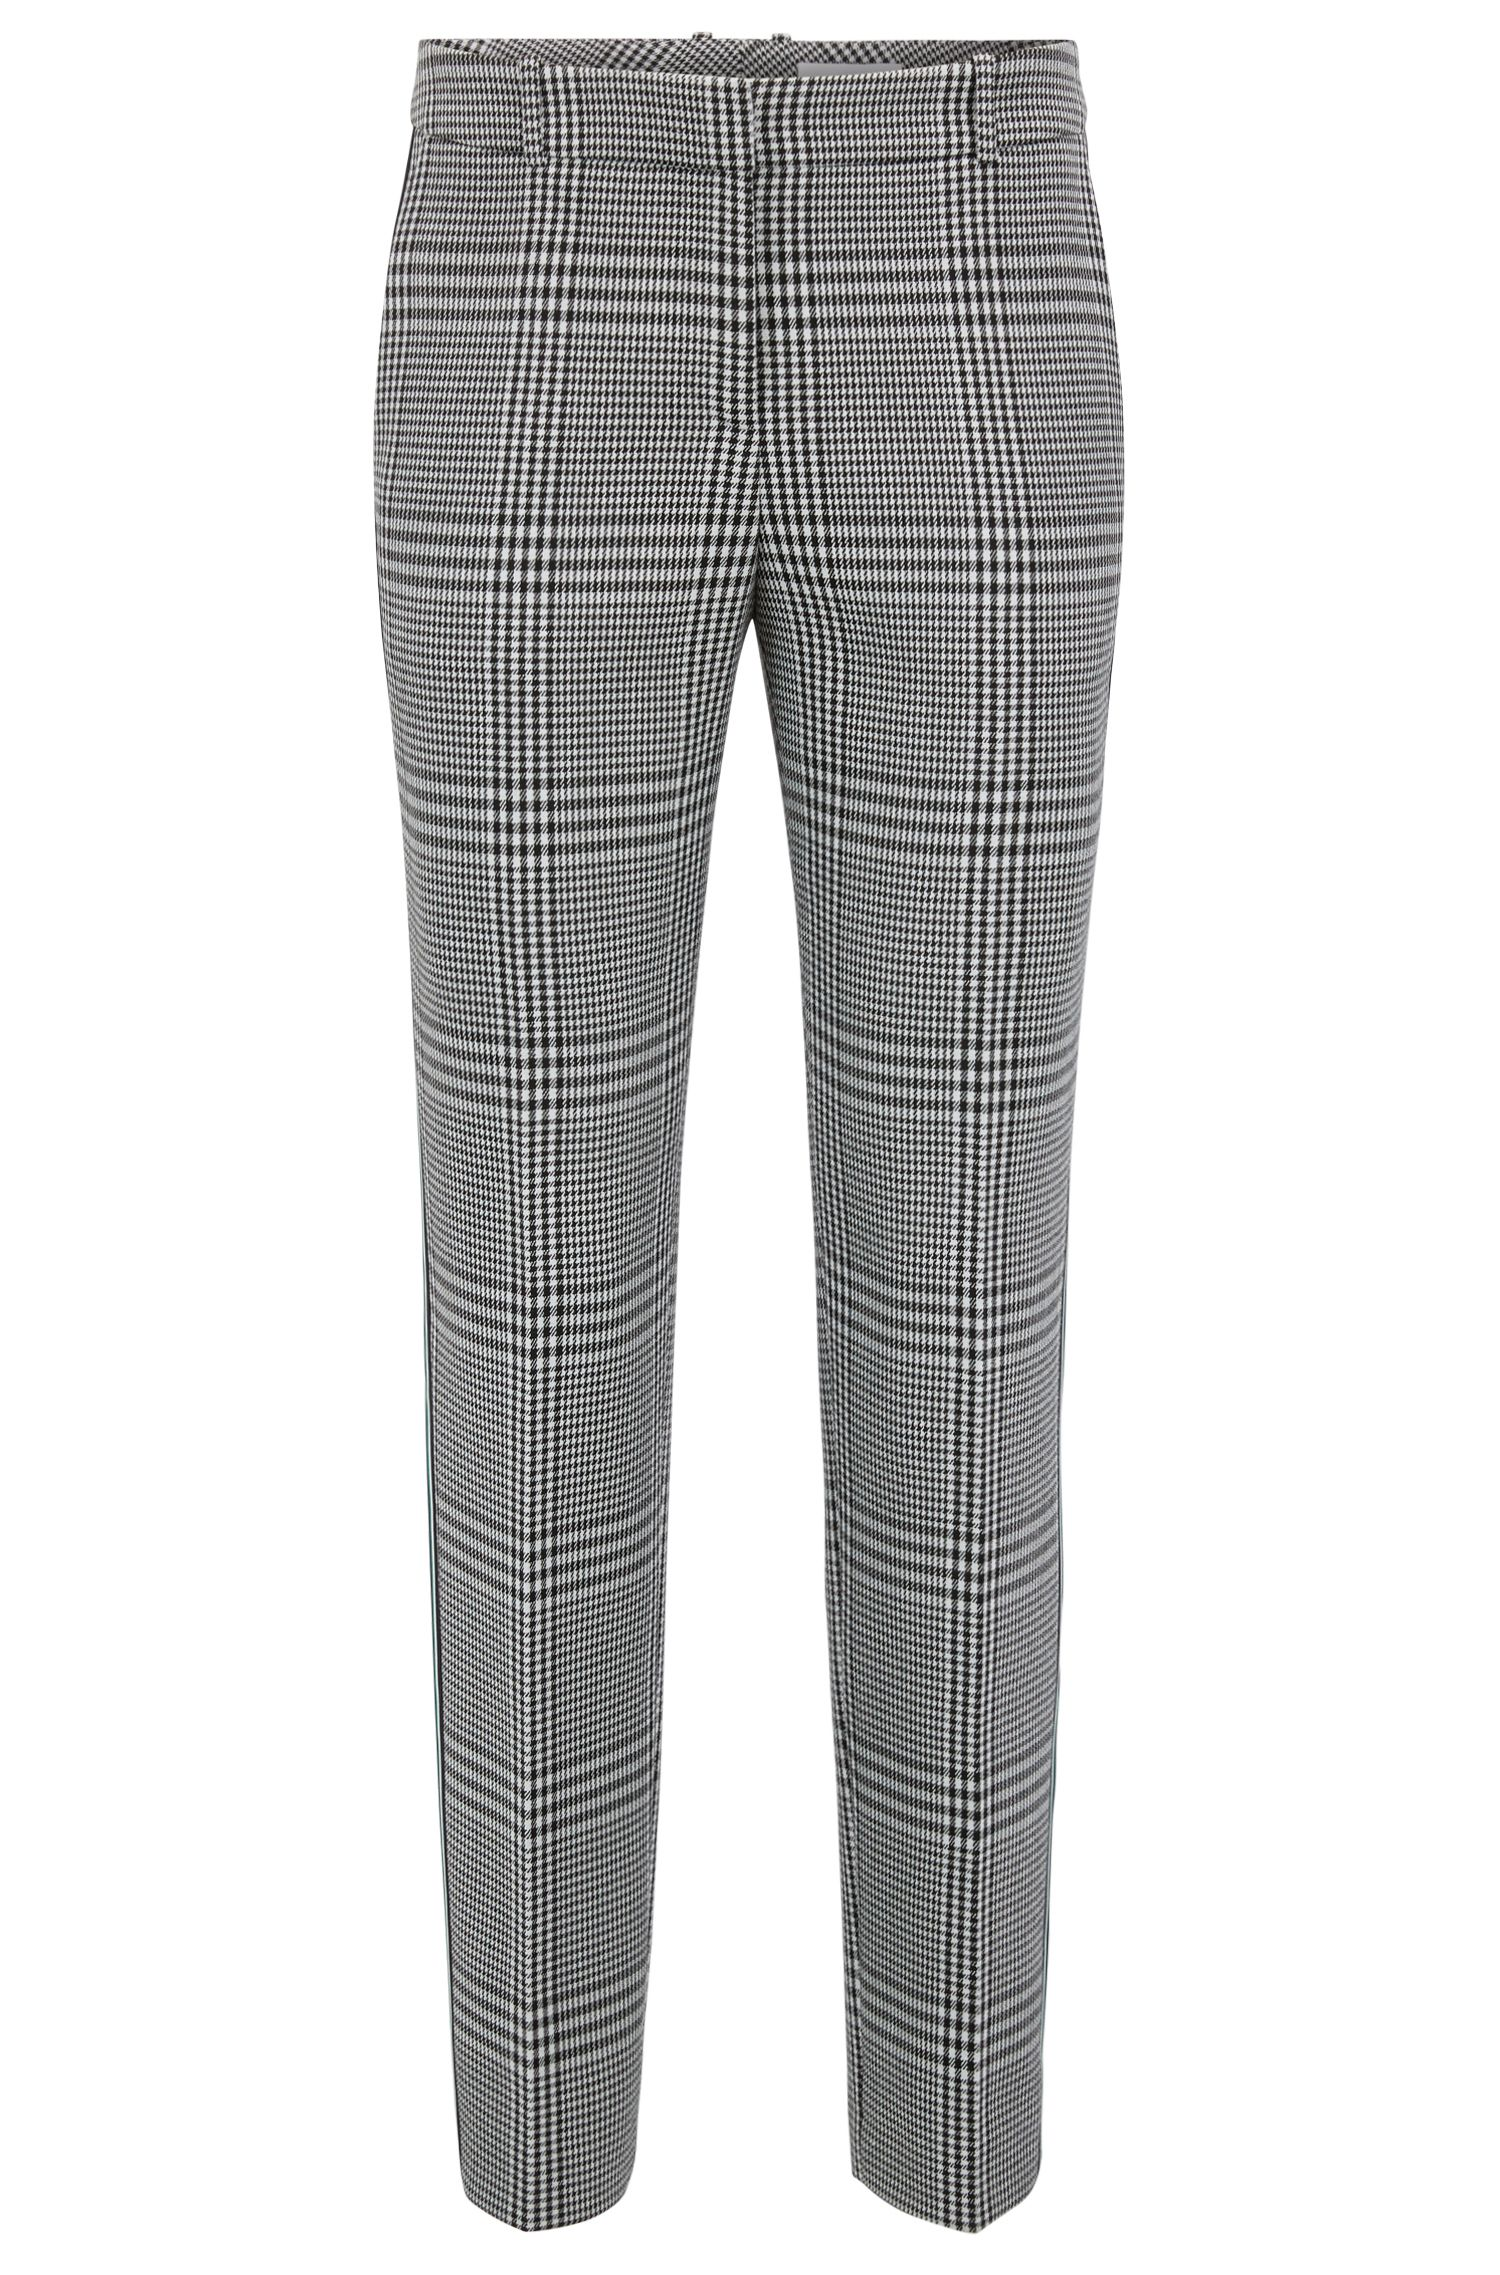 Tapered pants in Glen-check fabric with striped taping